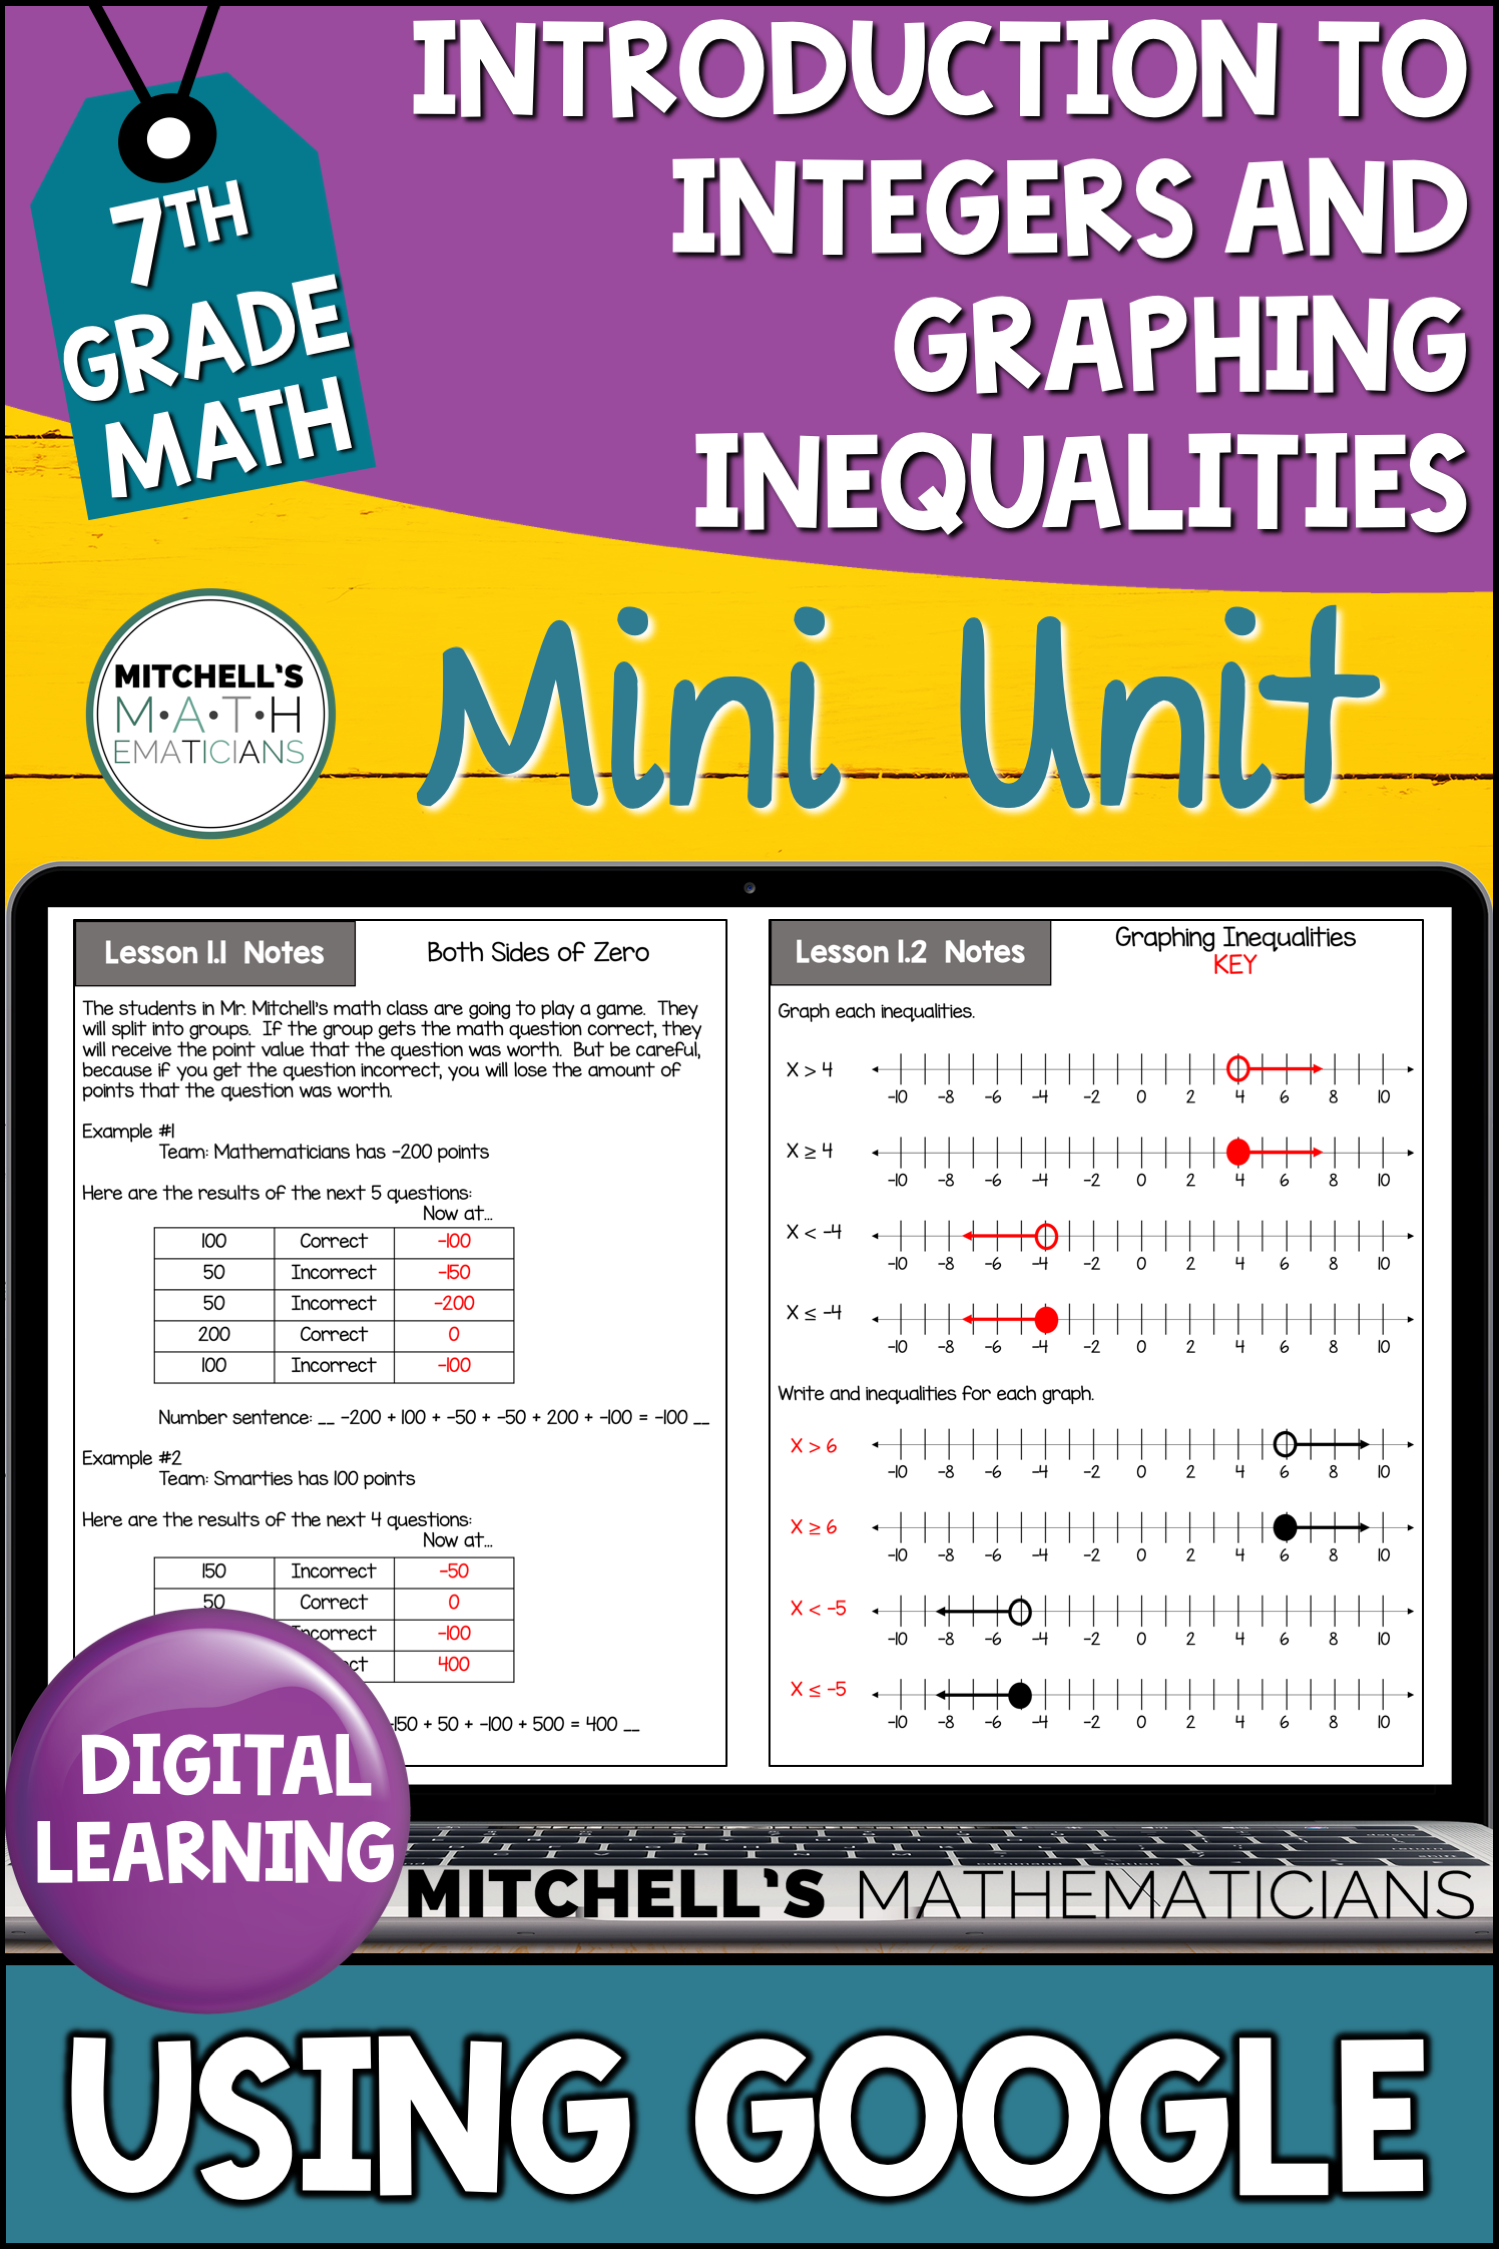 Pin On Secondary Math Resources Grades 6